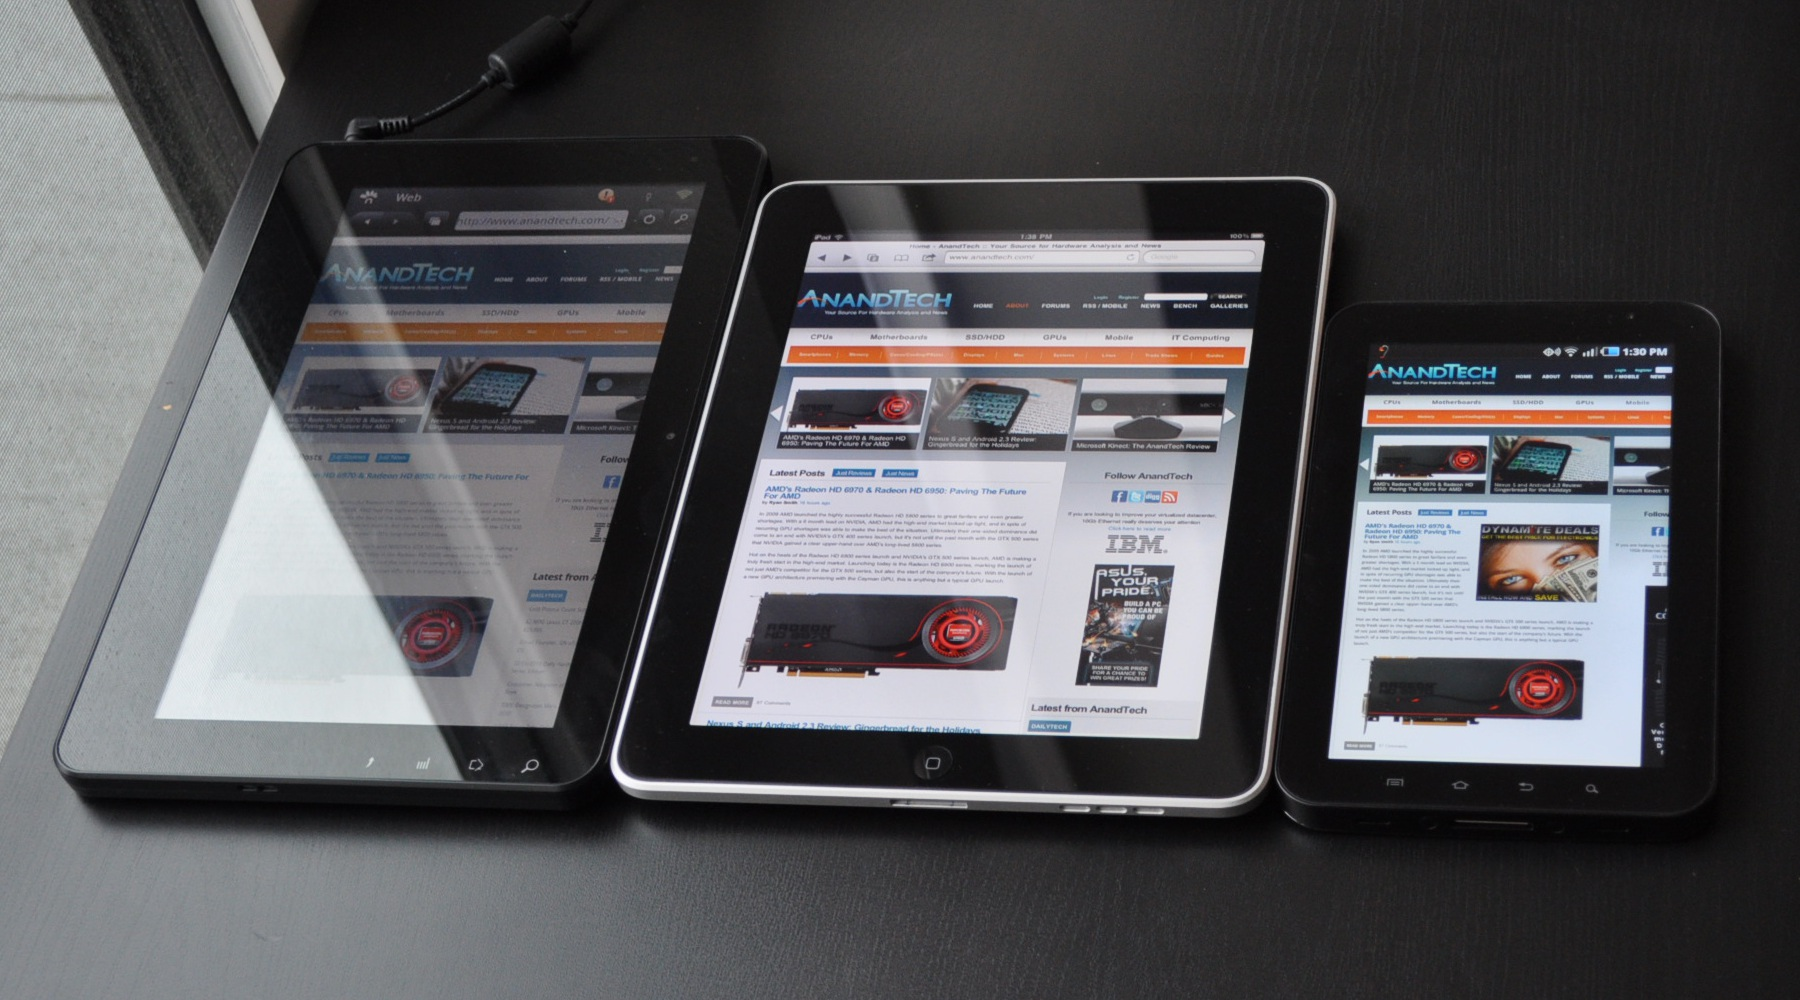 Samsung Galaxy Tab - Size Really Does Matter